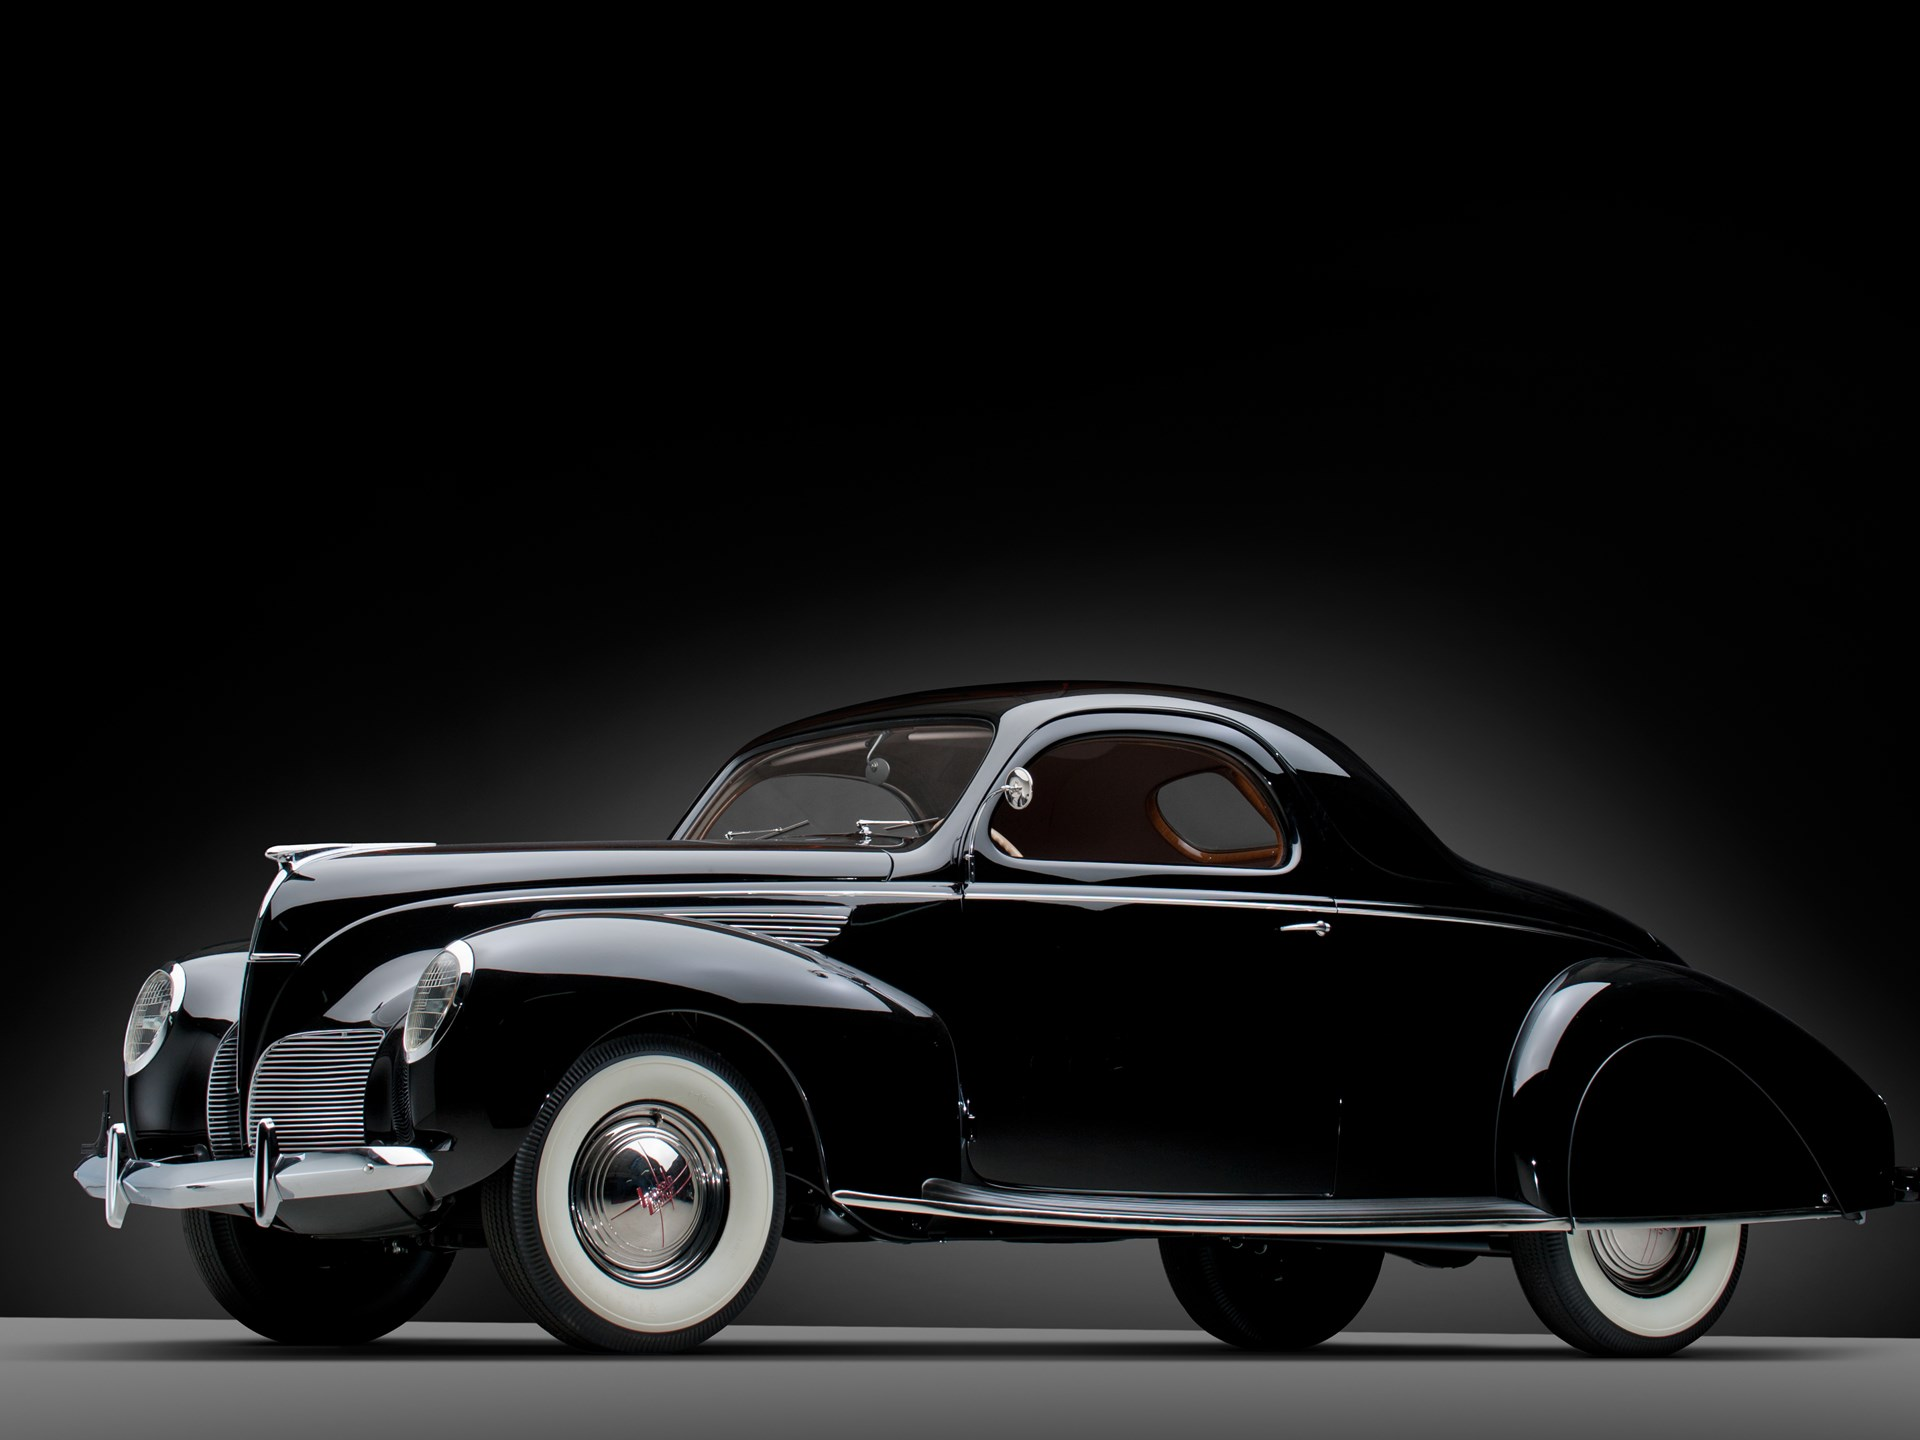 Rm Sotheby S 1938 Lincoln Zephyr Coupe The Dingman Collection 2012